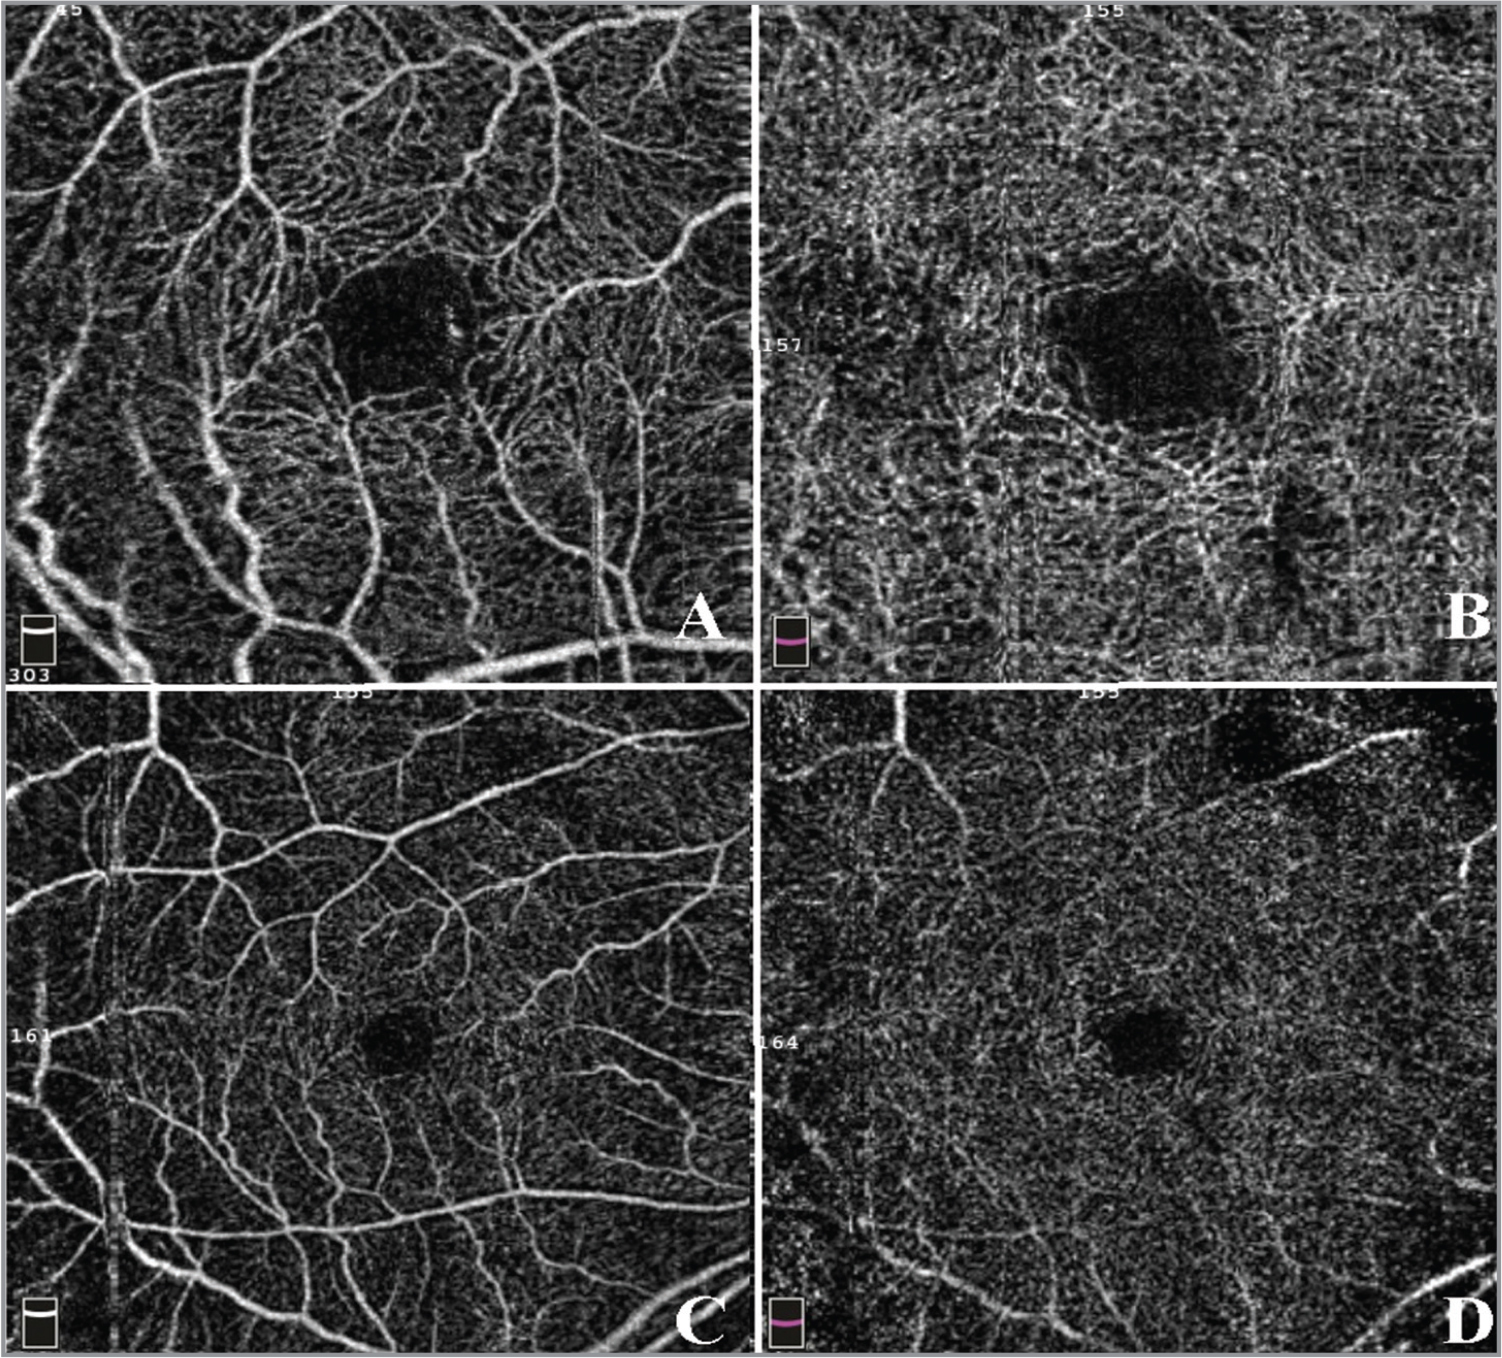 En face optical coherence tomography example of a patient without retinopathies. (A) 3 × 3 superficial capillaries area. (B) 3 × 3 deep capillaries area. (C) 6 × 6 superficial capillaries area. (D) 6 × 6 deep capillaries area.